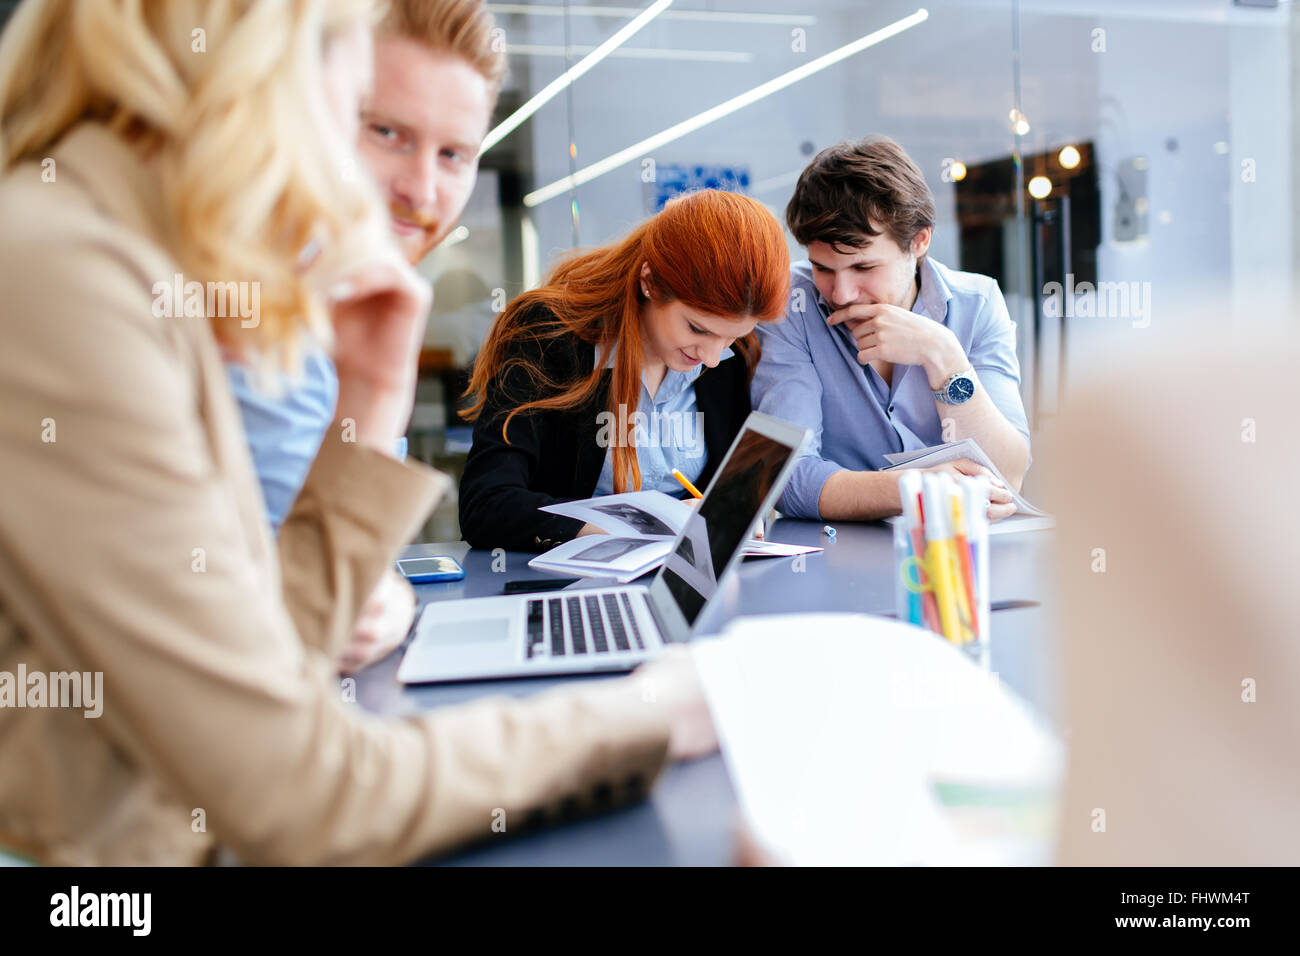 Business people collaborating in office and working on project together - Stock Image